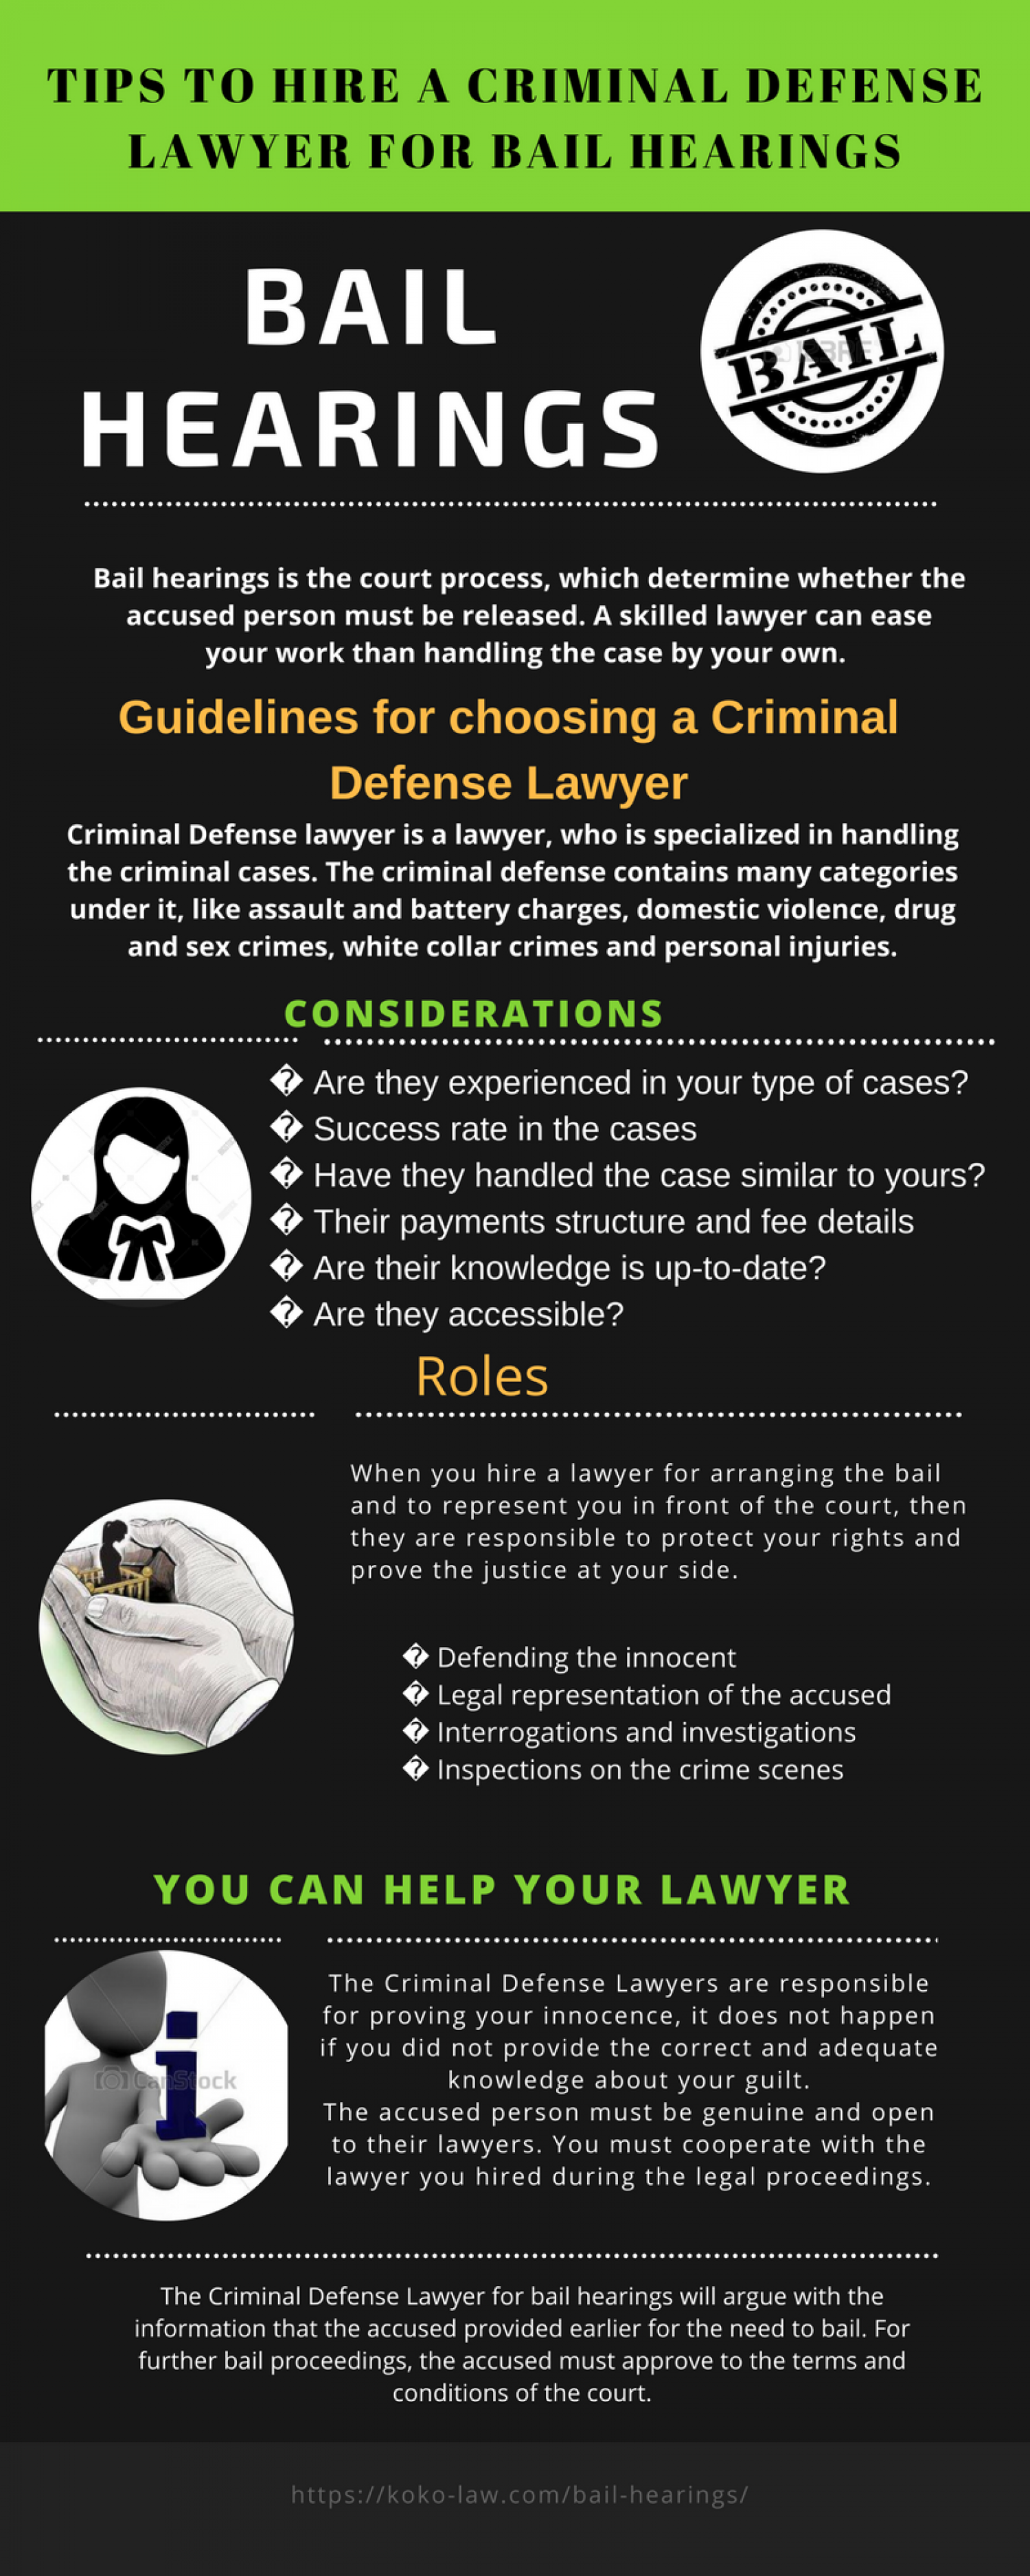 Tips to hire a Criminal Defense Lawyer for bail hearings Infographic